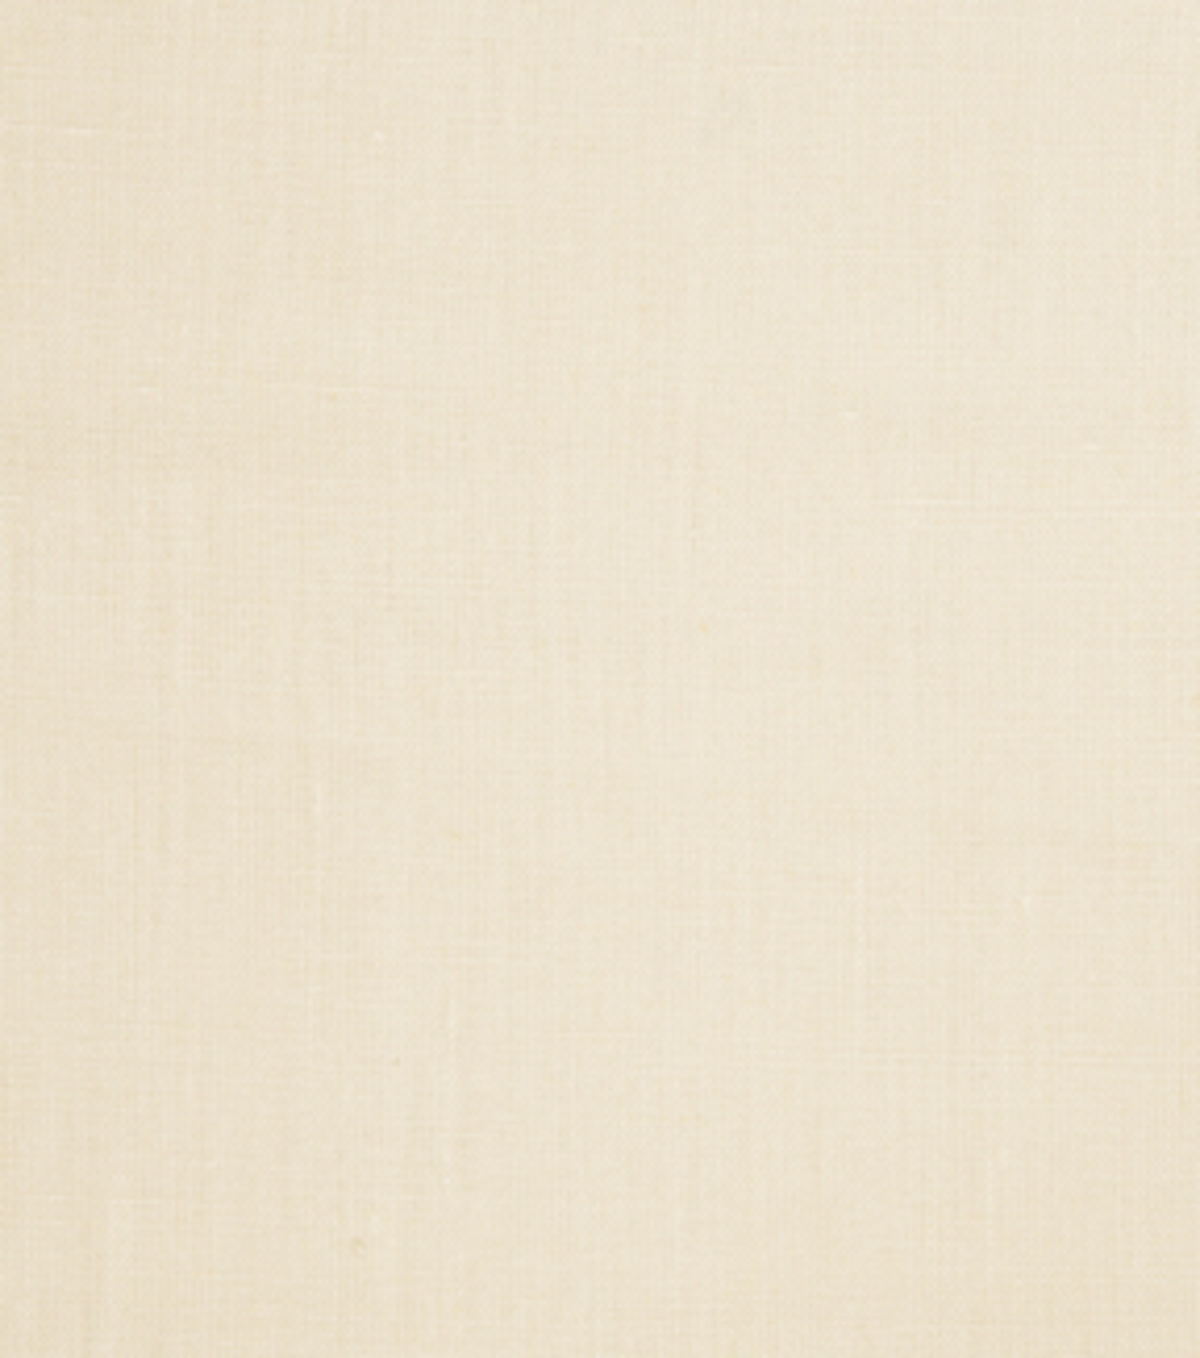 Home Decor 8\u0022x8\u0022 Fabric Swatch-Signature Series Sigourney Cream